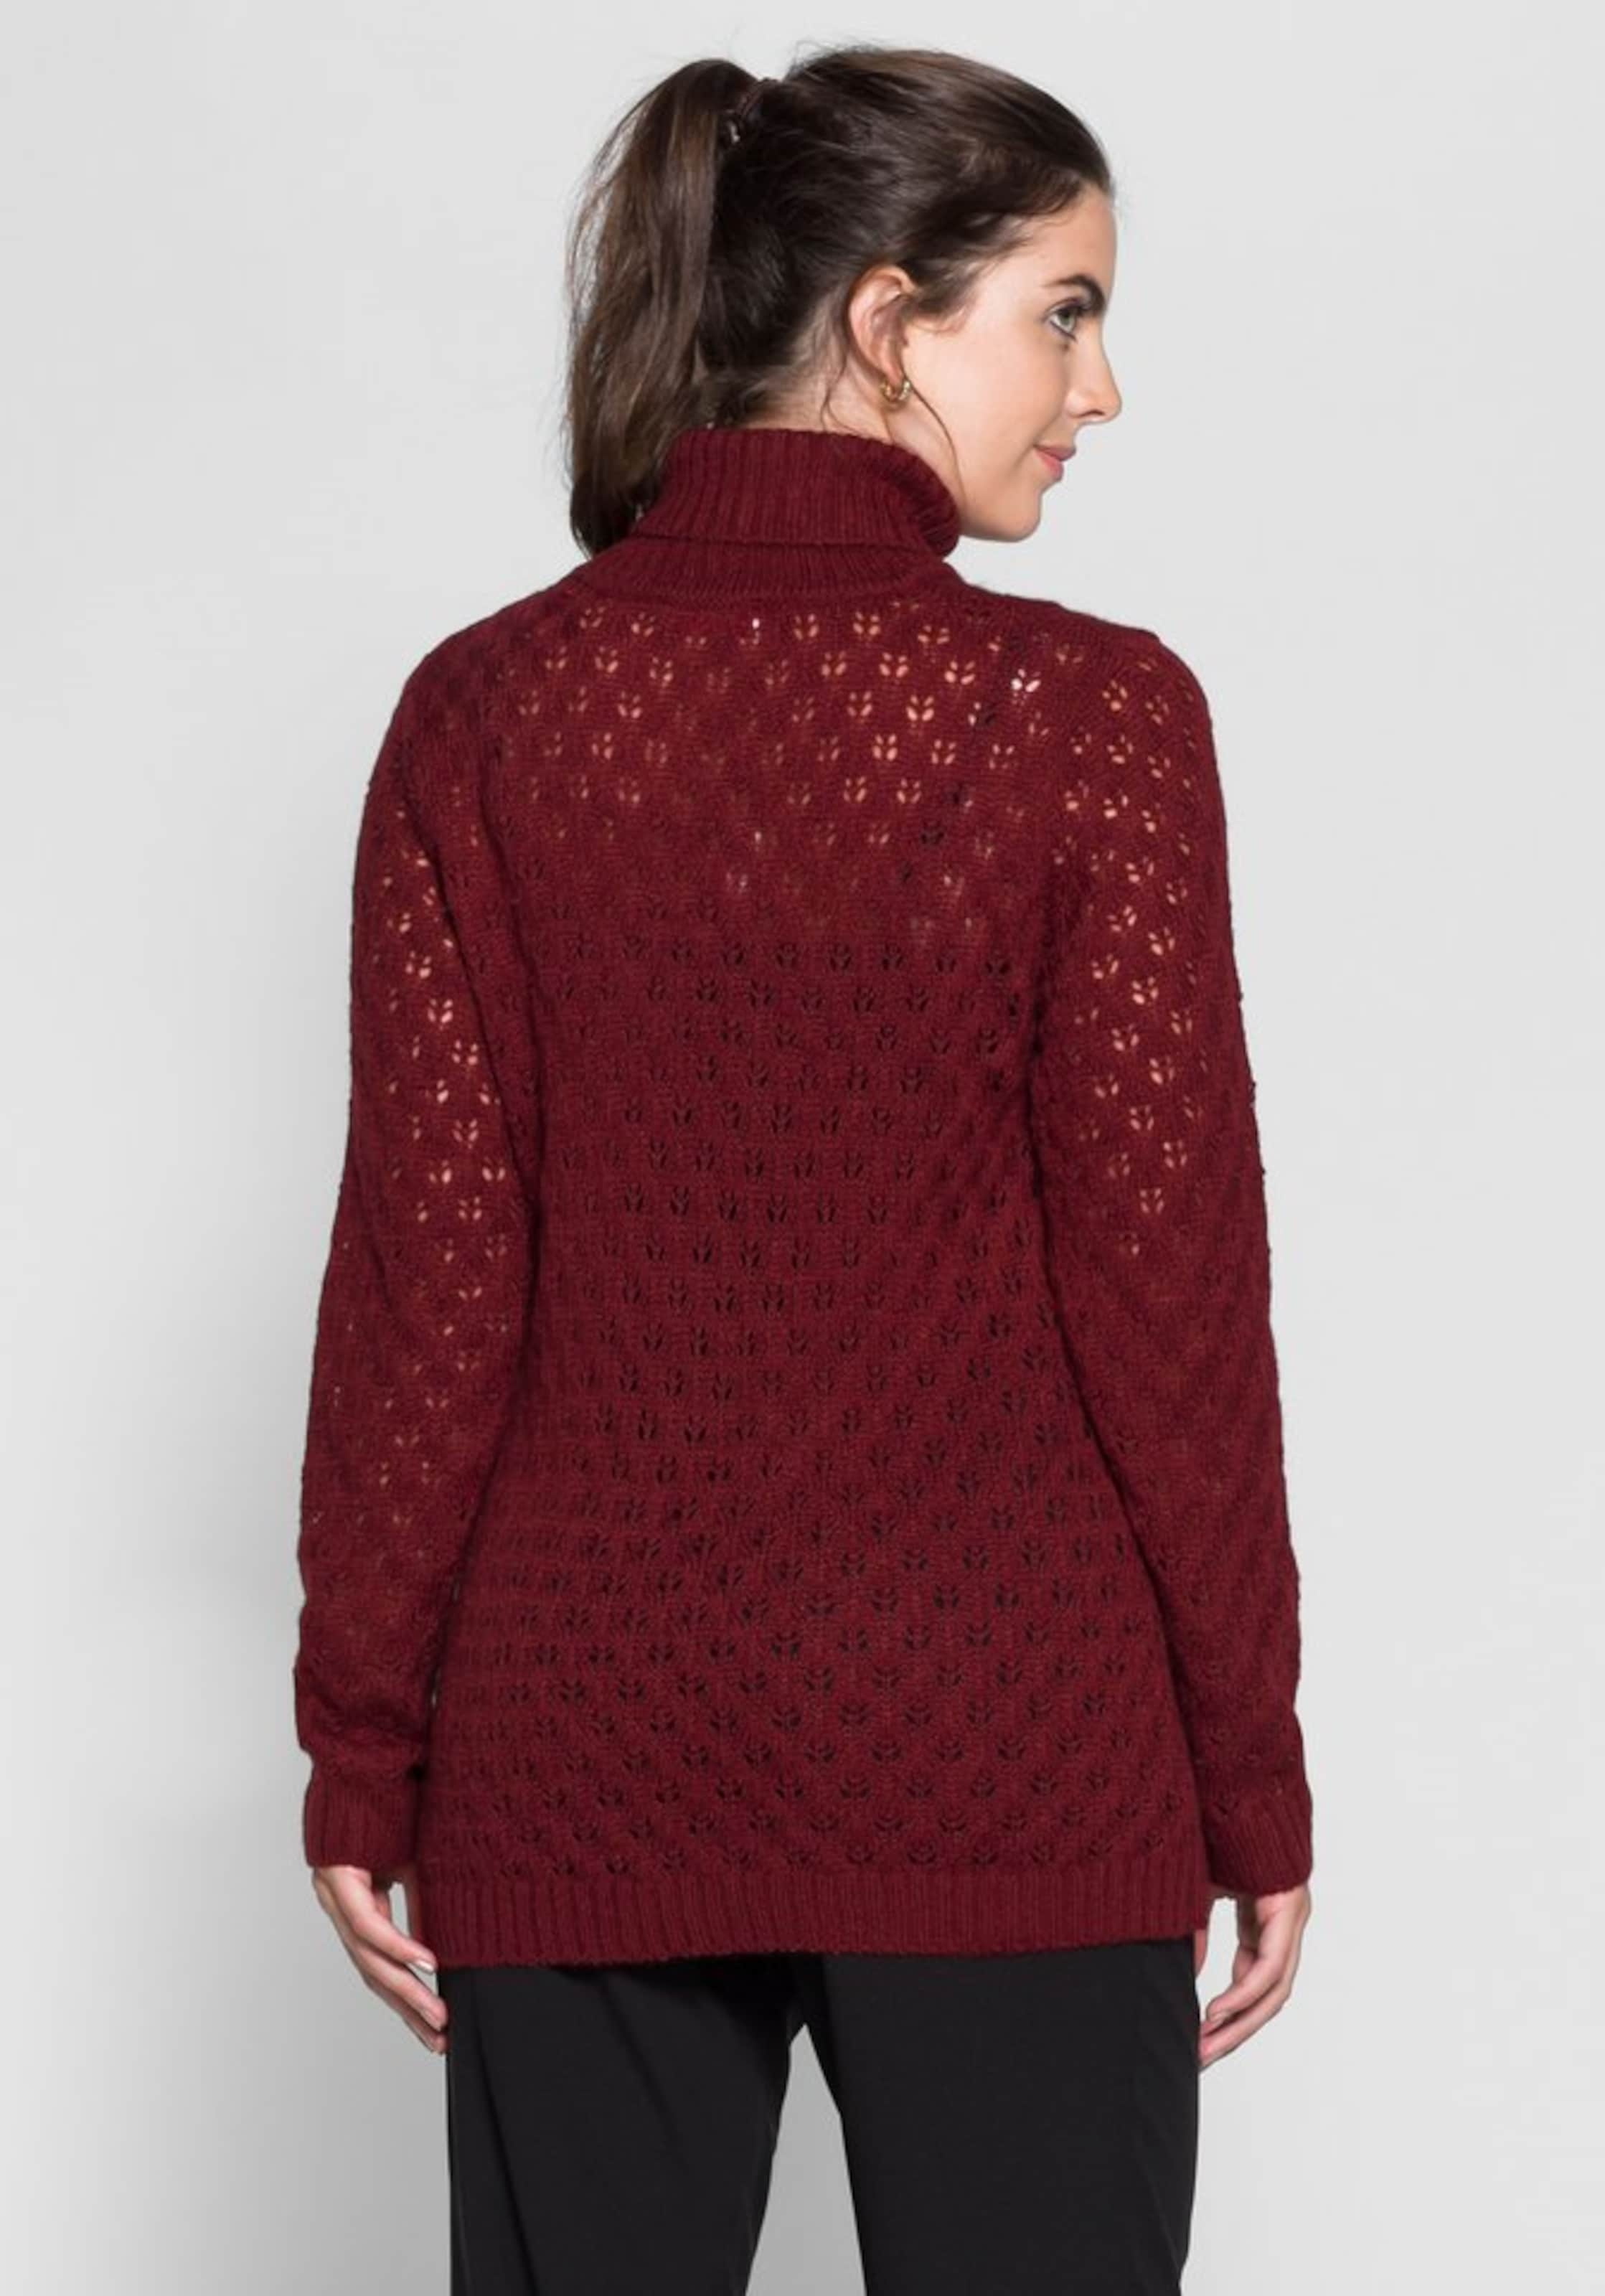 In Pullover Pullover Bordeaux In Sheego Bordeaux Pullover Sheego Sheego Bordeaux Sheego In Pullover 0mNvn8OywP